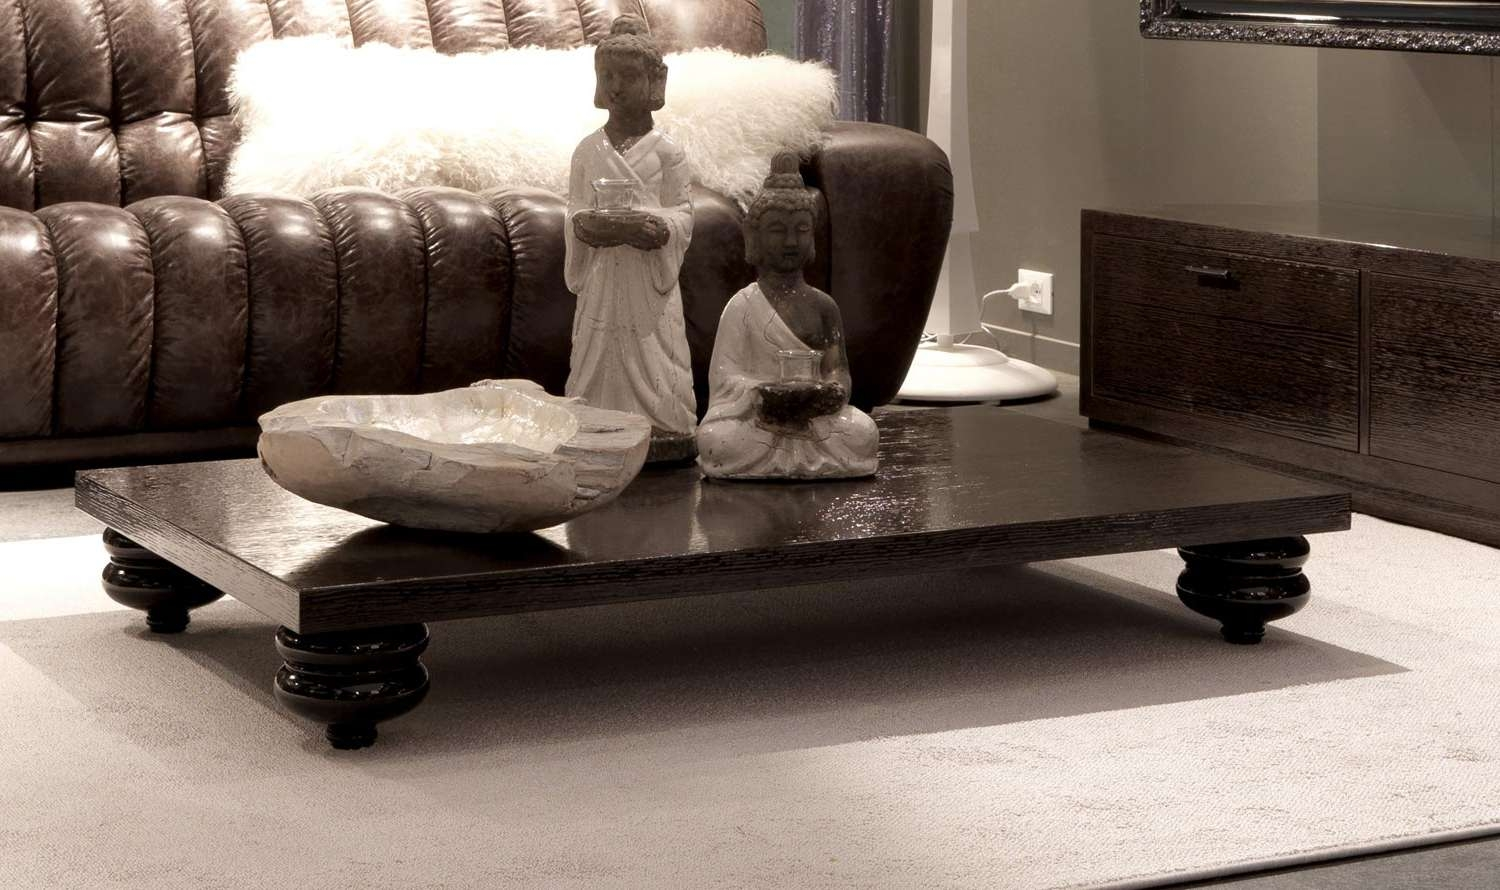 Most Recent Luxury Coffee Tables Throughout Leon Coffee Tables Cortezari Italian Luxury Furniture High End (View 11 of 20)